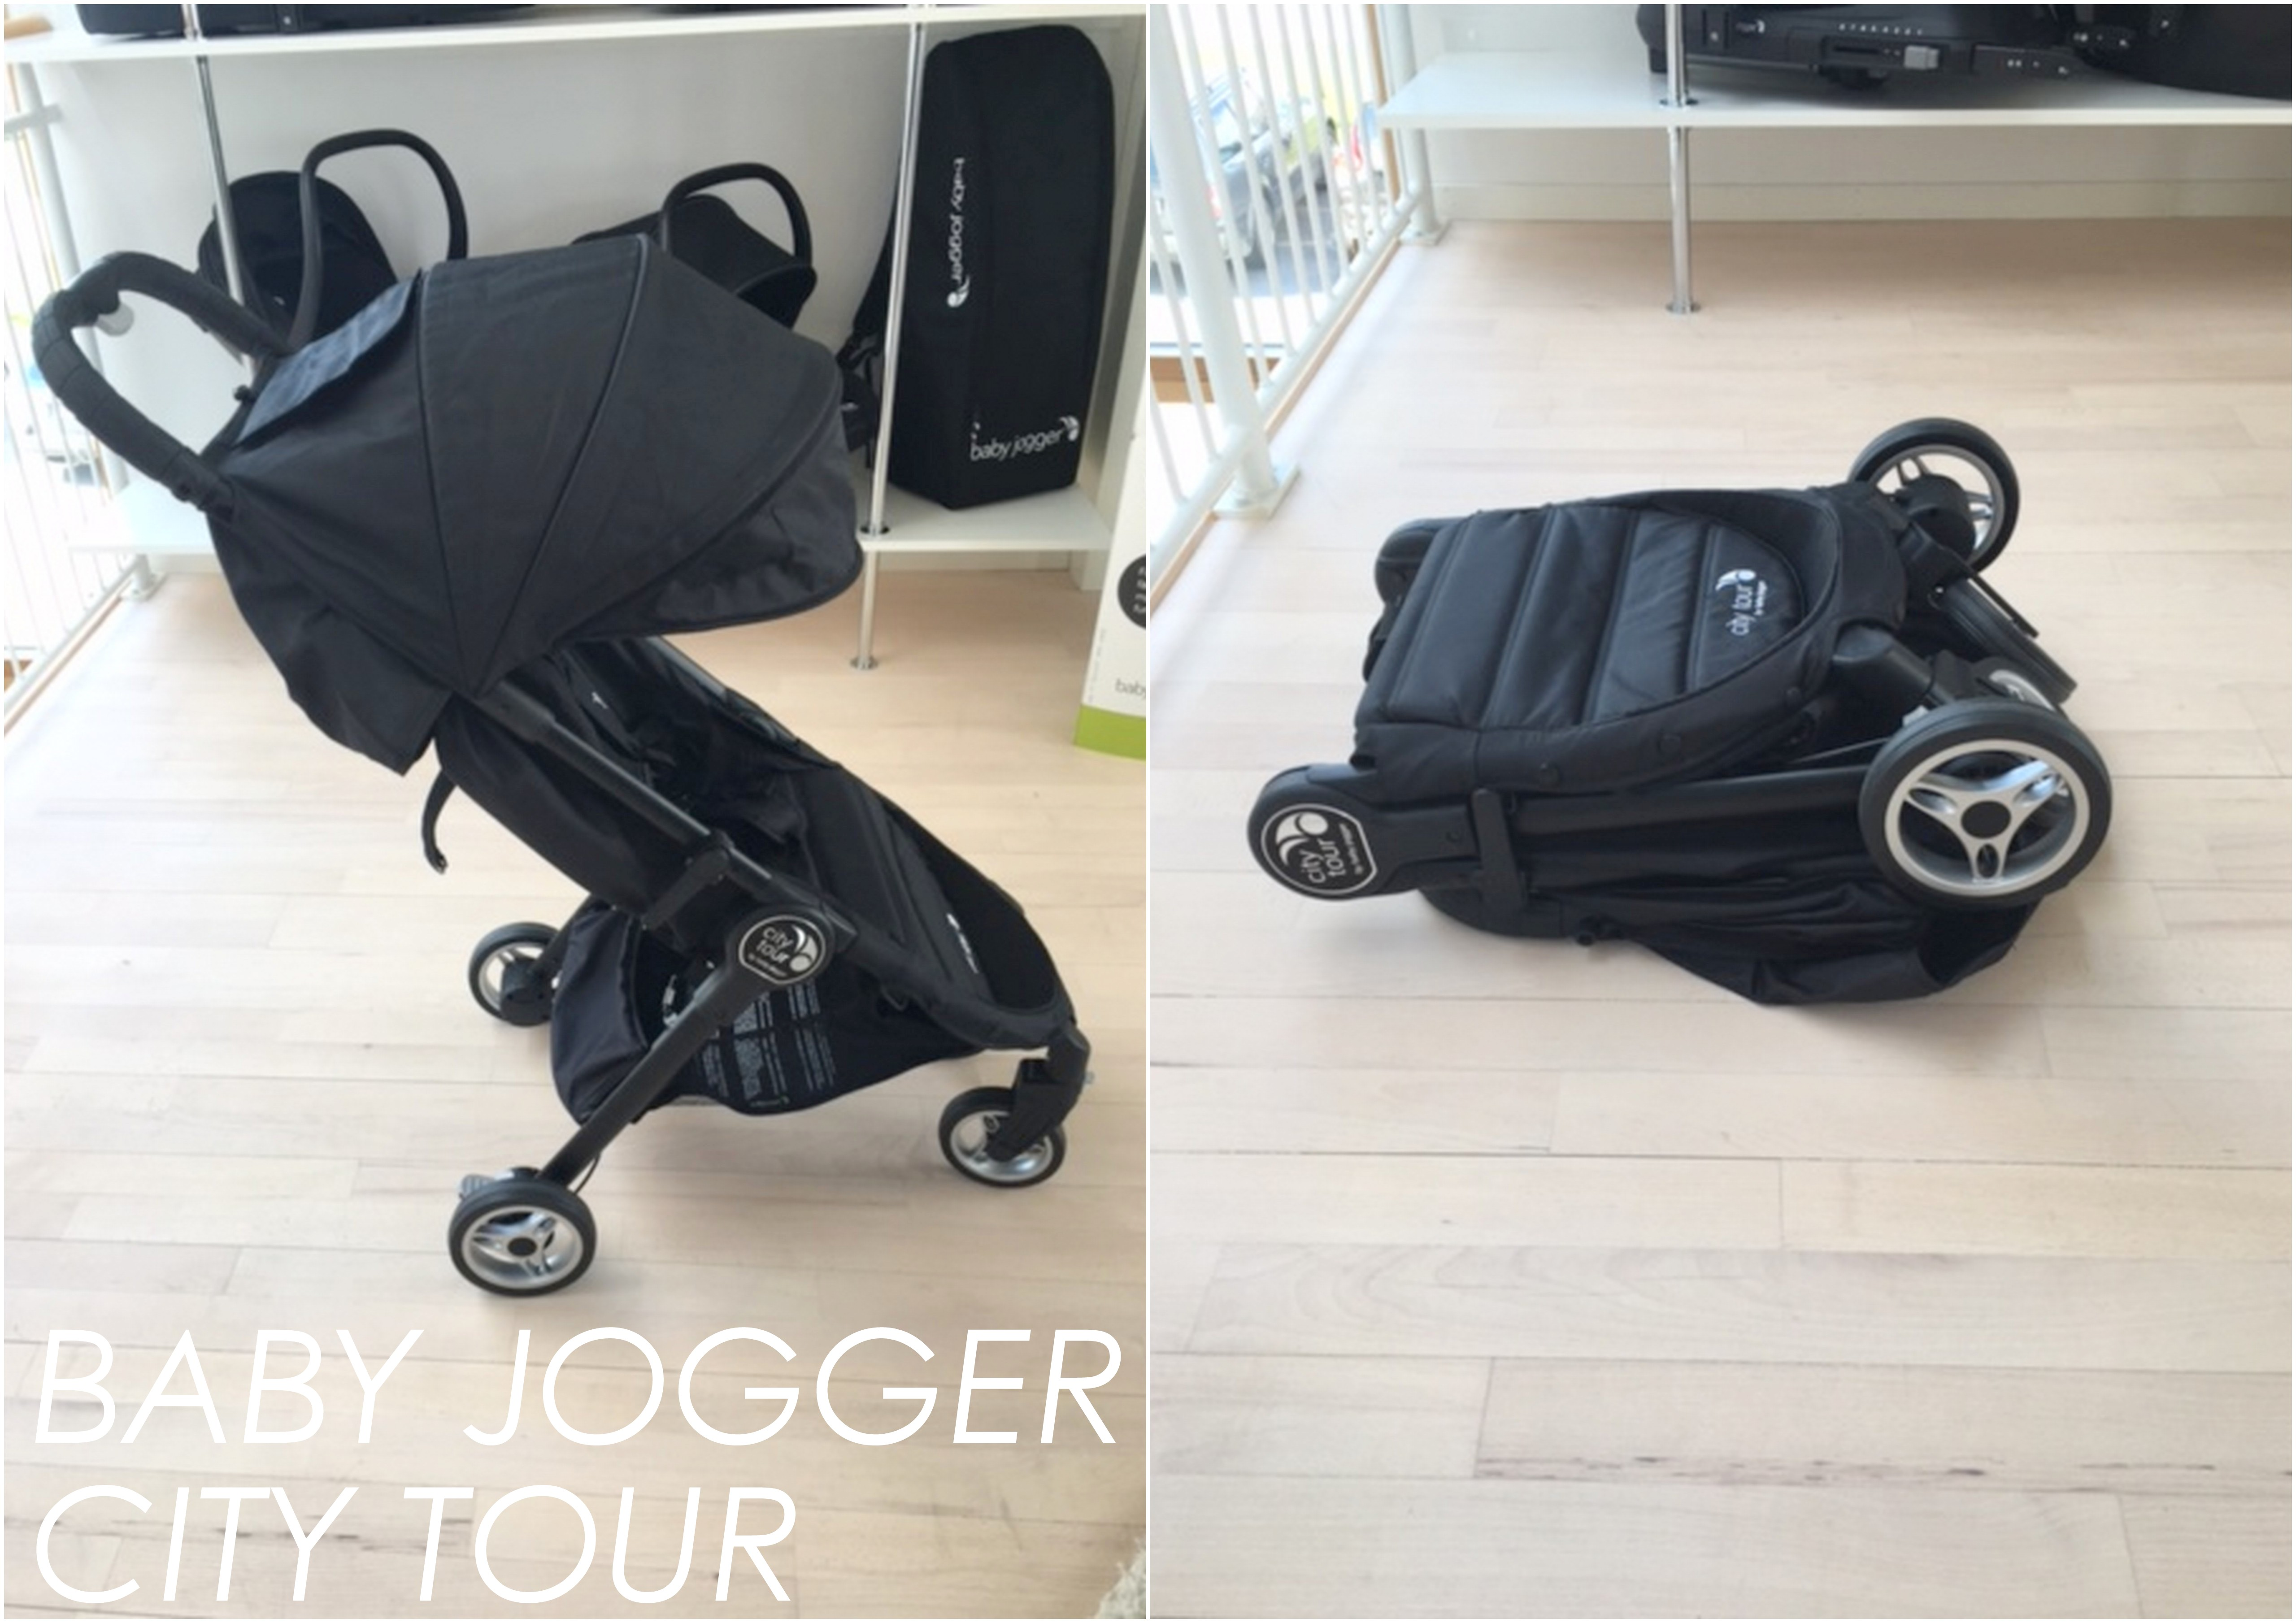 If you want to make it big, make it small - Baby Jogger ...